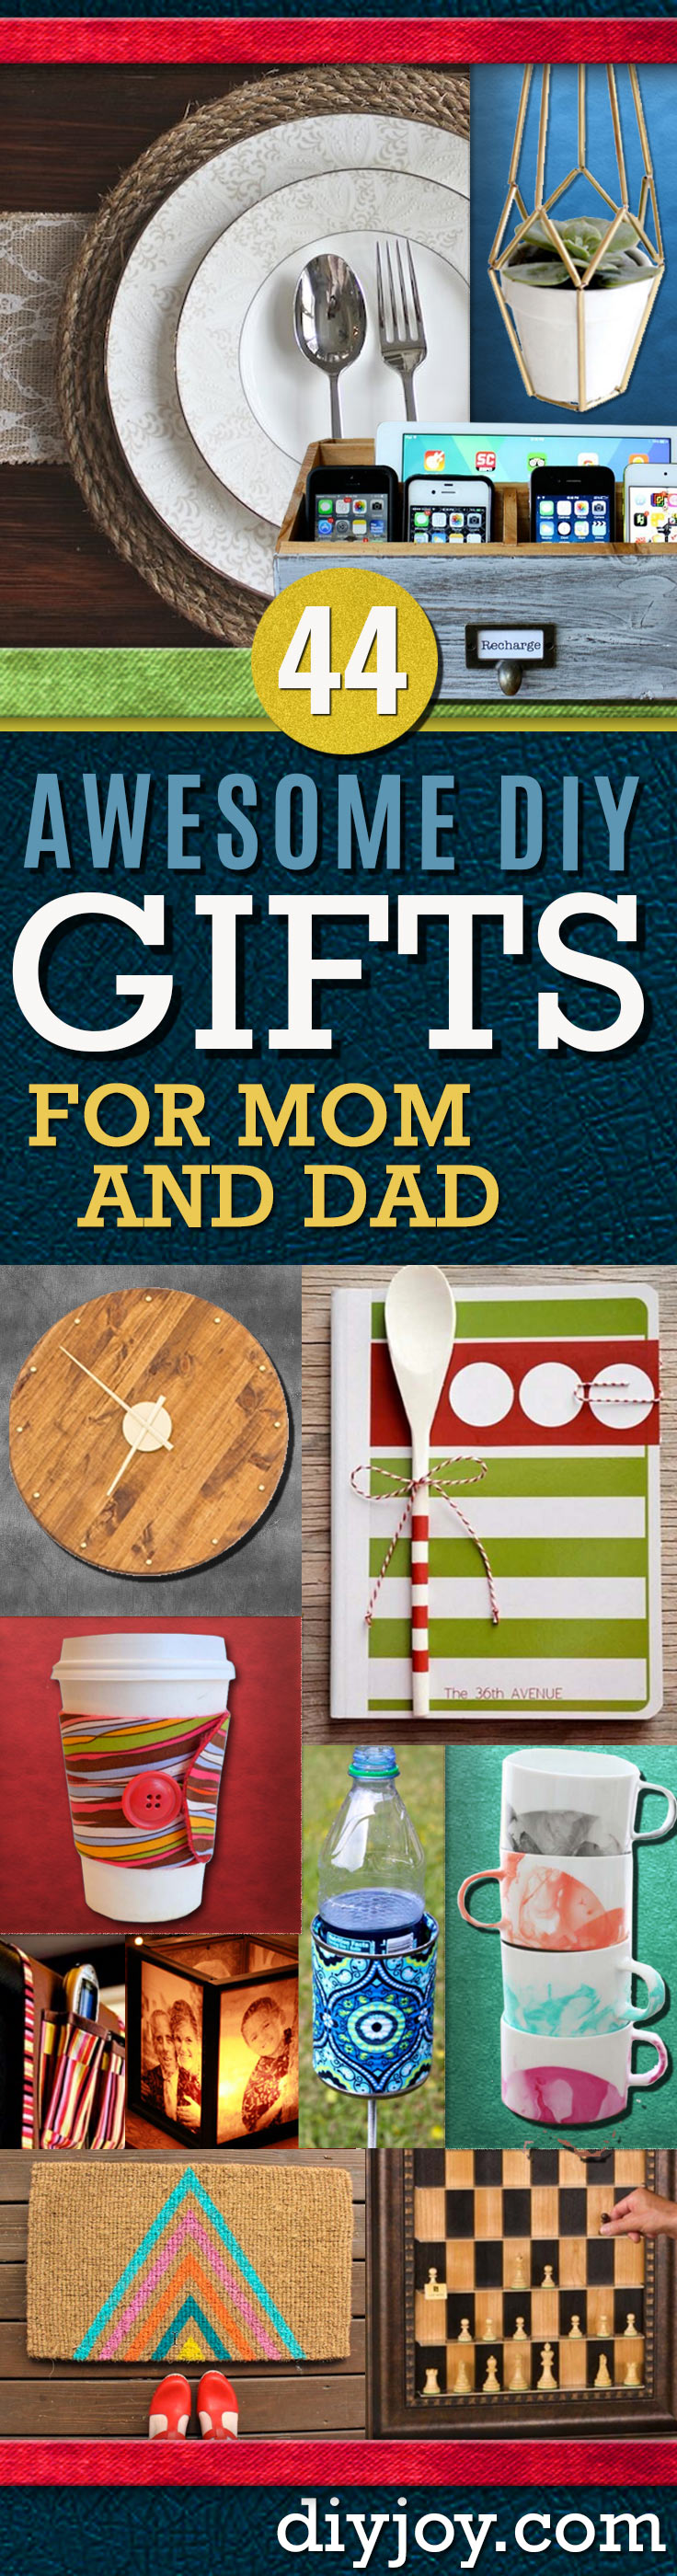 DIY Gifts For Mom And Dad   Homemade Christmas Gift Ideas For Your Parents.  Cool